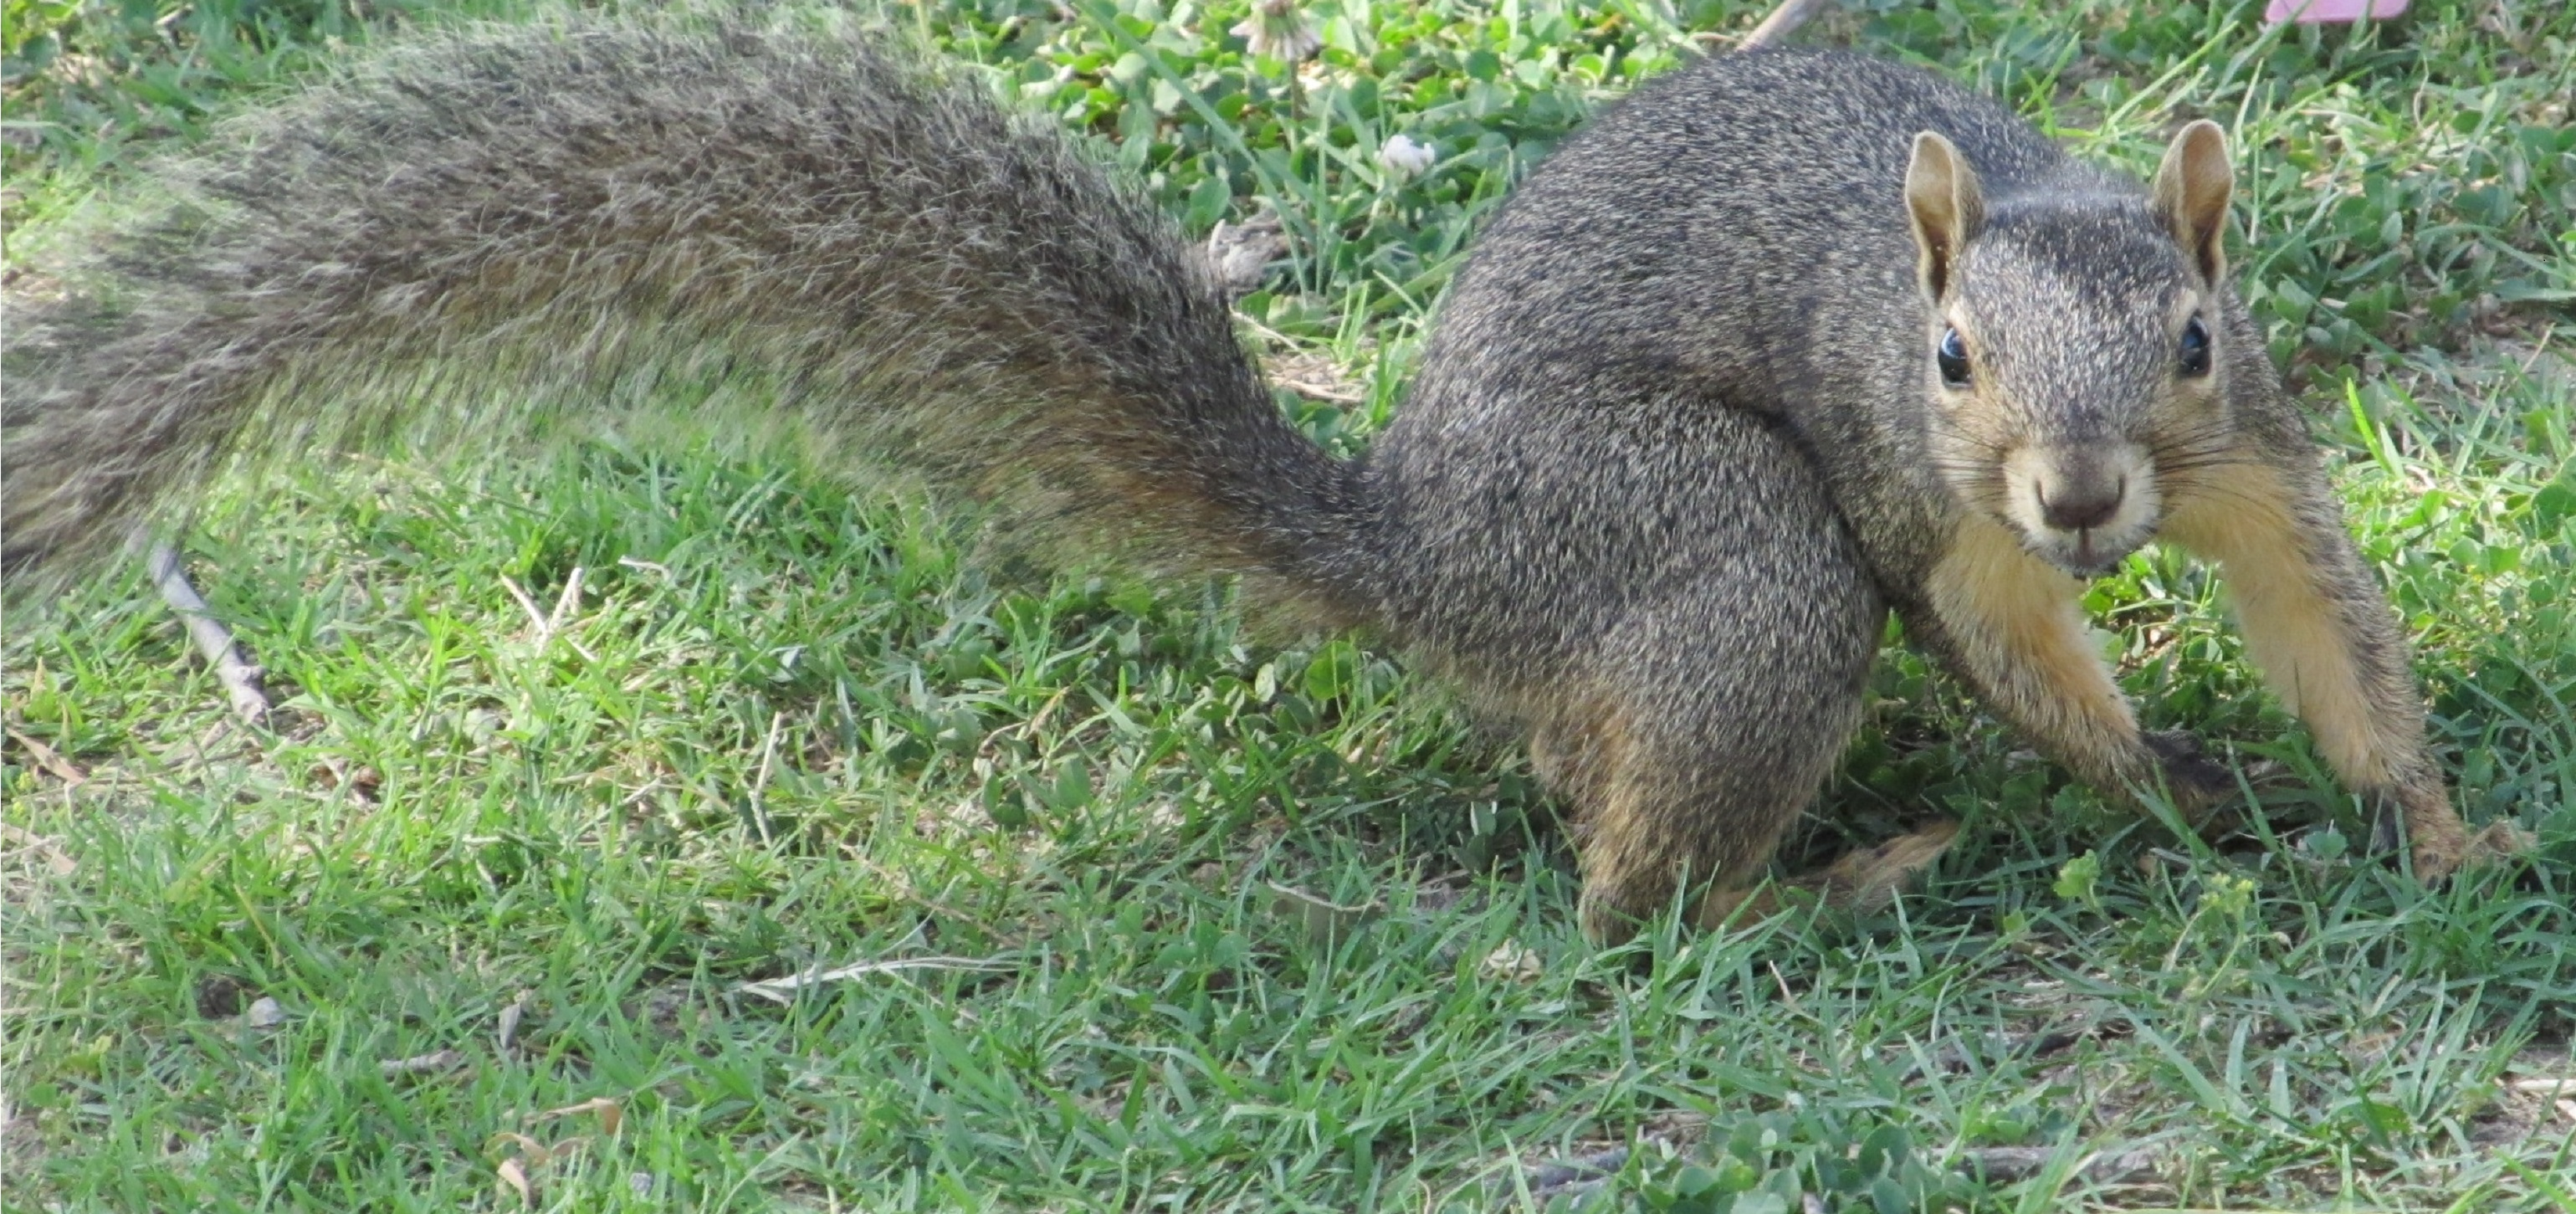 Pose of a squirrel photo